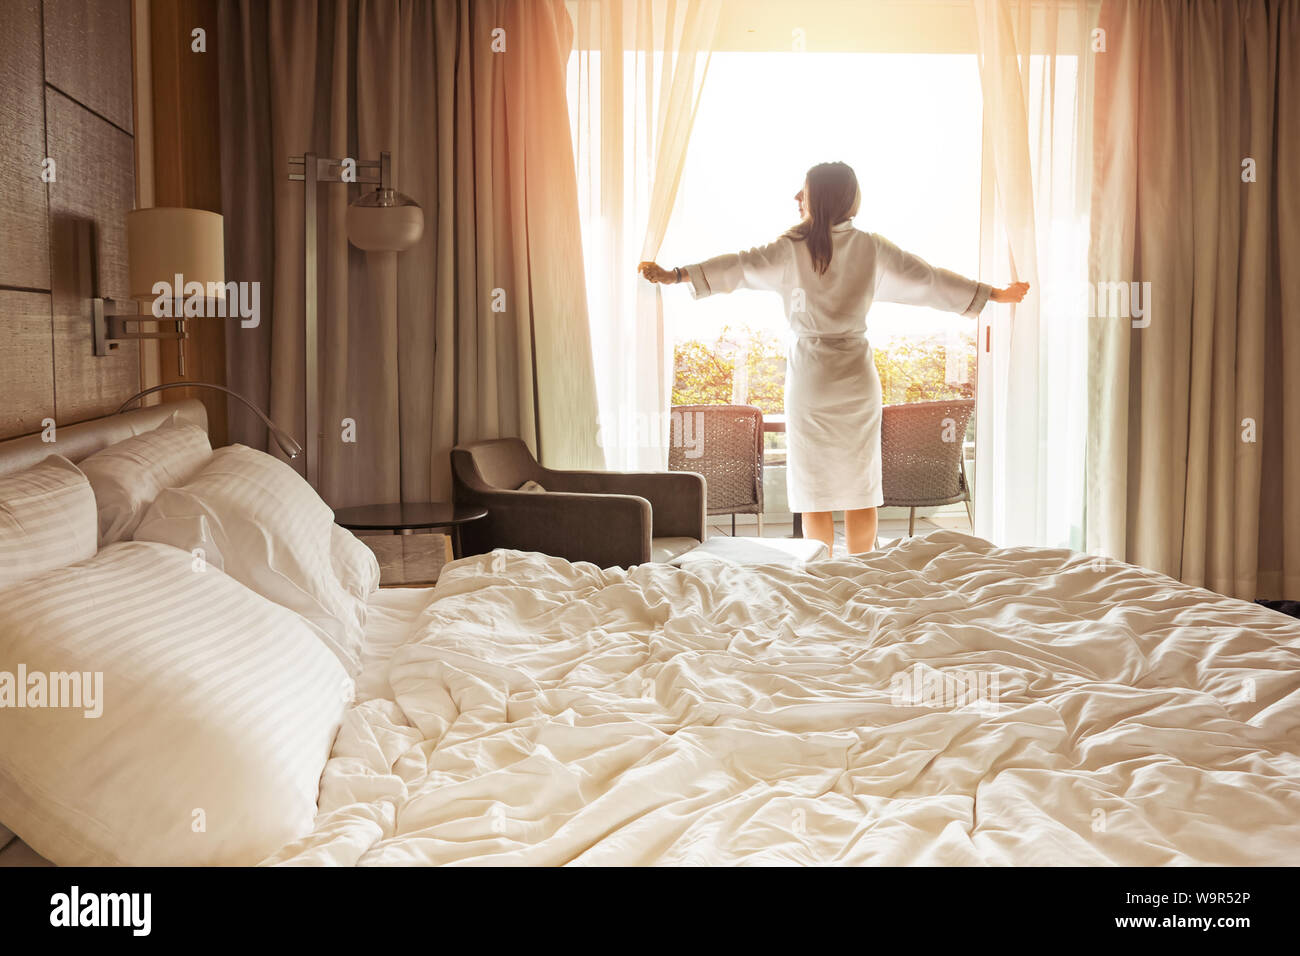 Woman Opening Hotel Curtains Stock Photos & Woman Opening